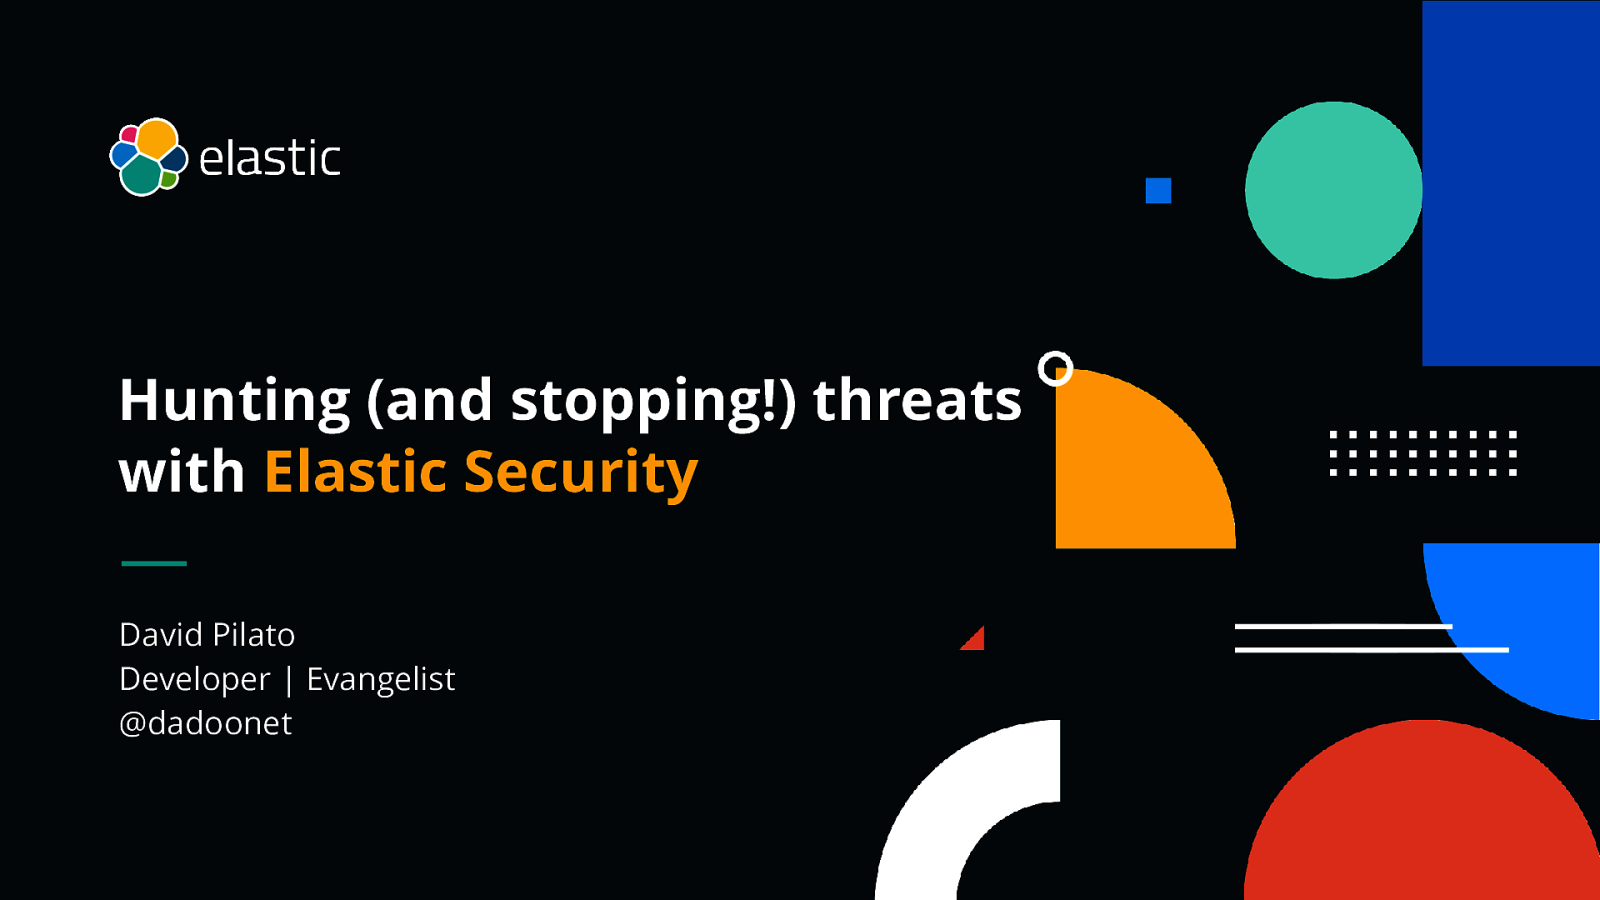 Hunting (and stopping!) threats with Elastic Security by David Pilato